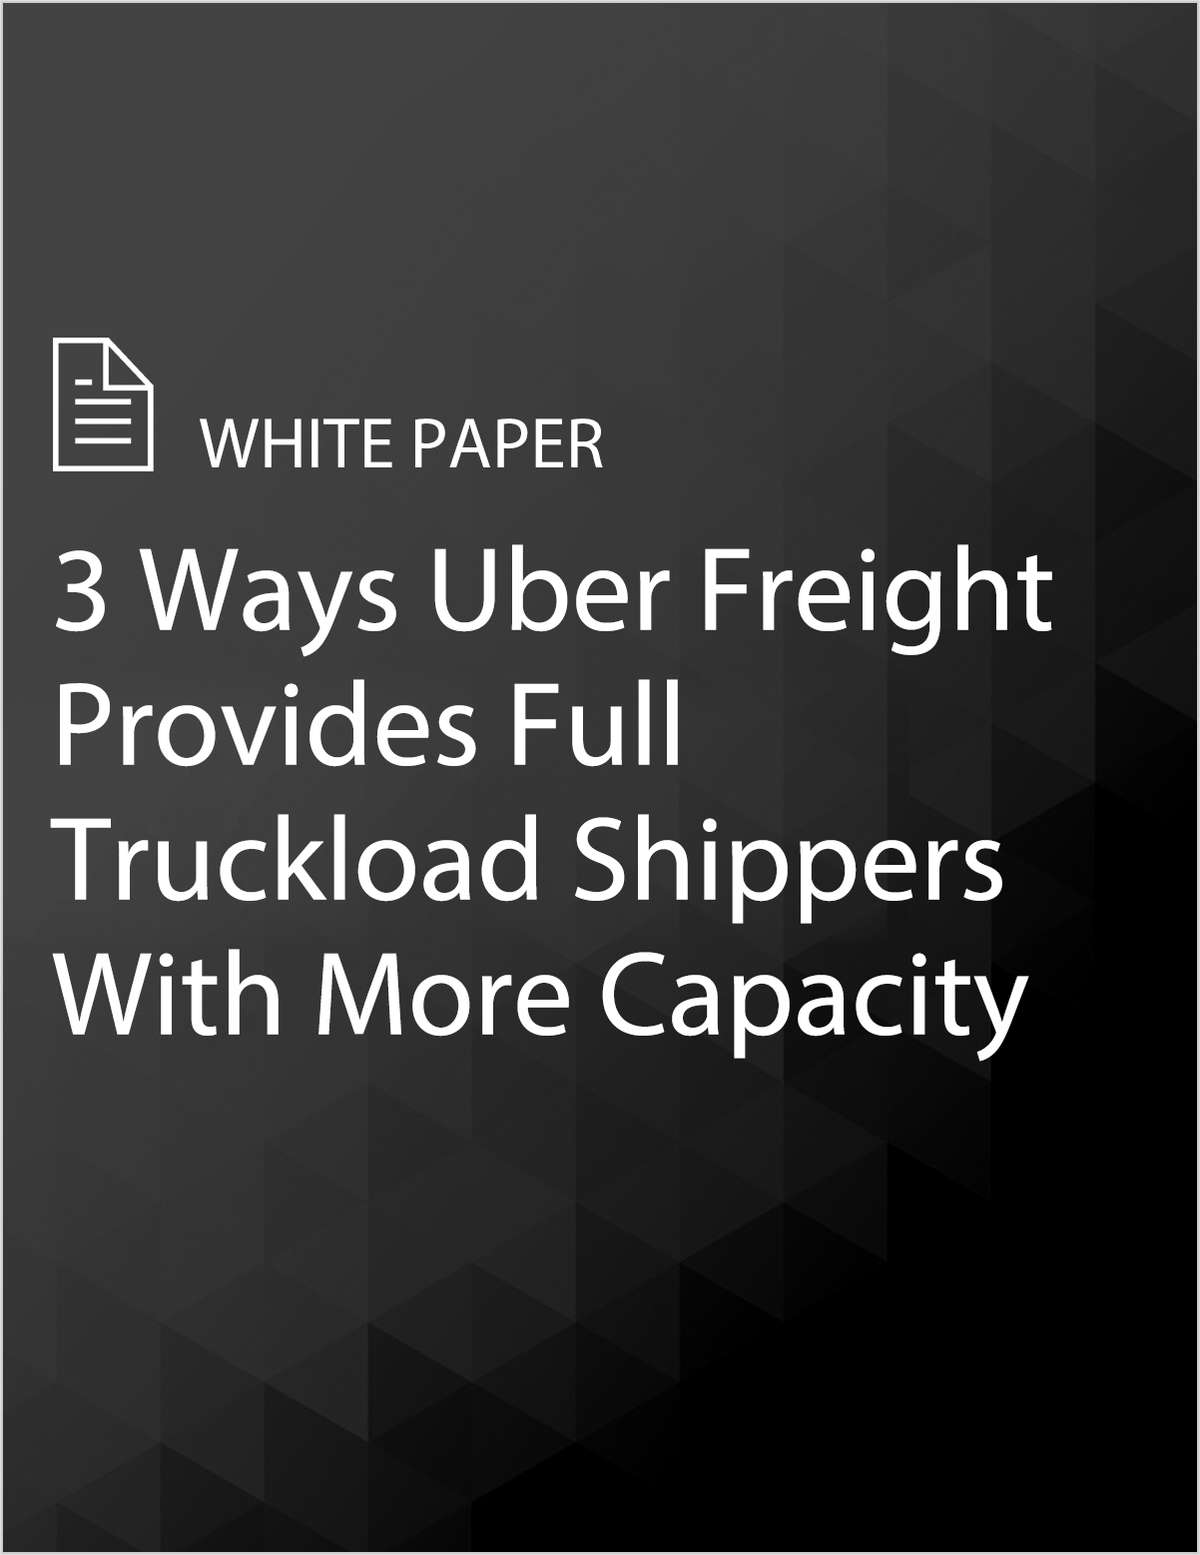 3 Ways Uber Freight Provides Full Truckload Shippers With More Capacity